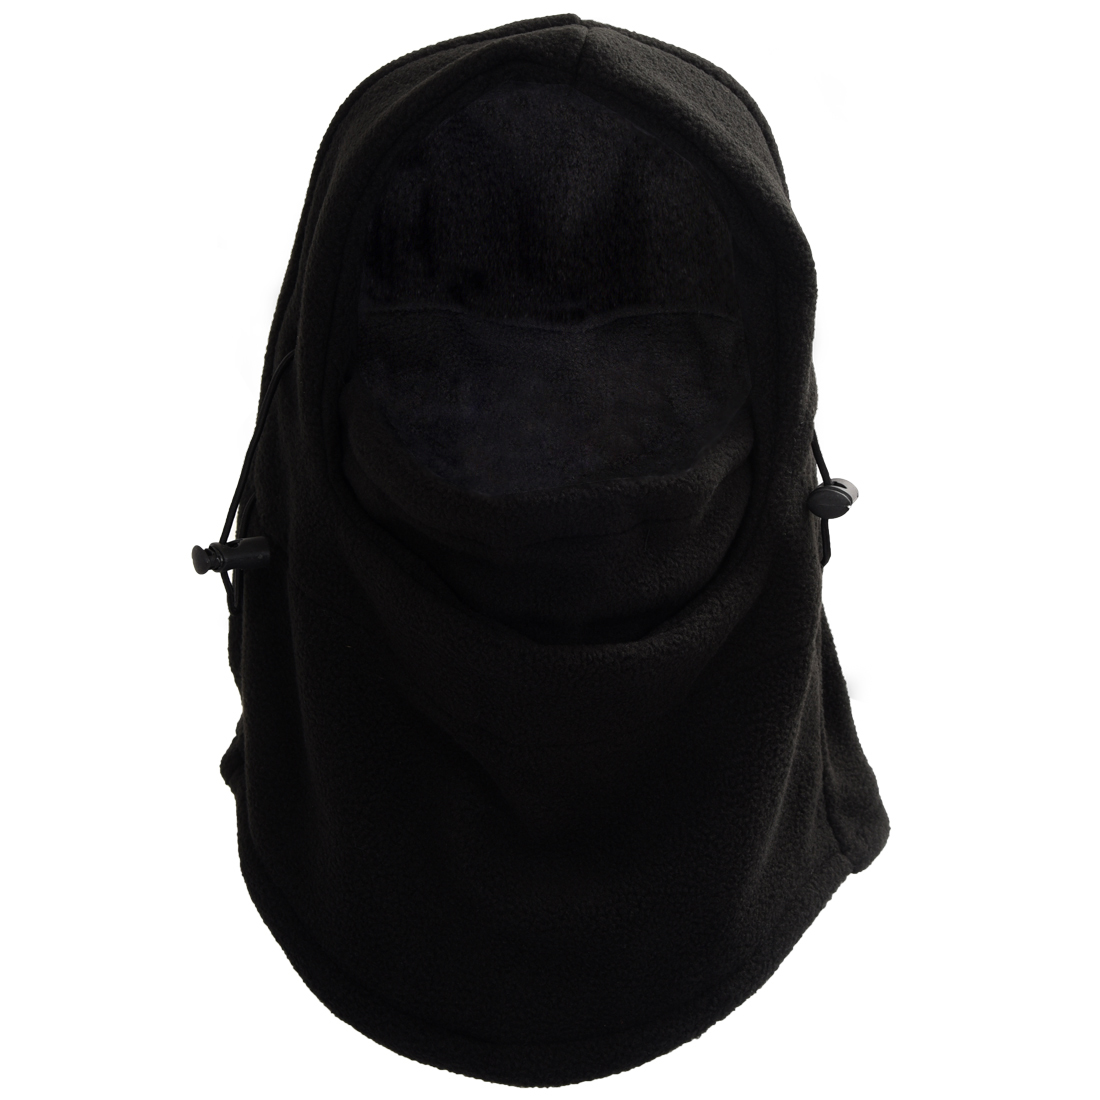 6 kinds of functions windproof hoods masked cap (Black) pedotransfer functions